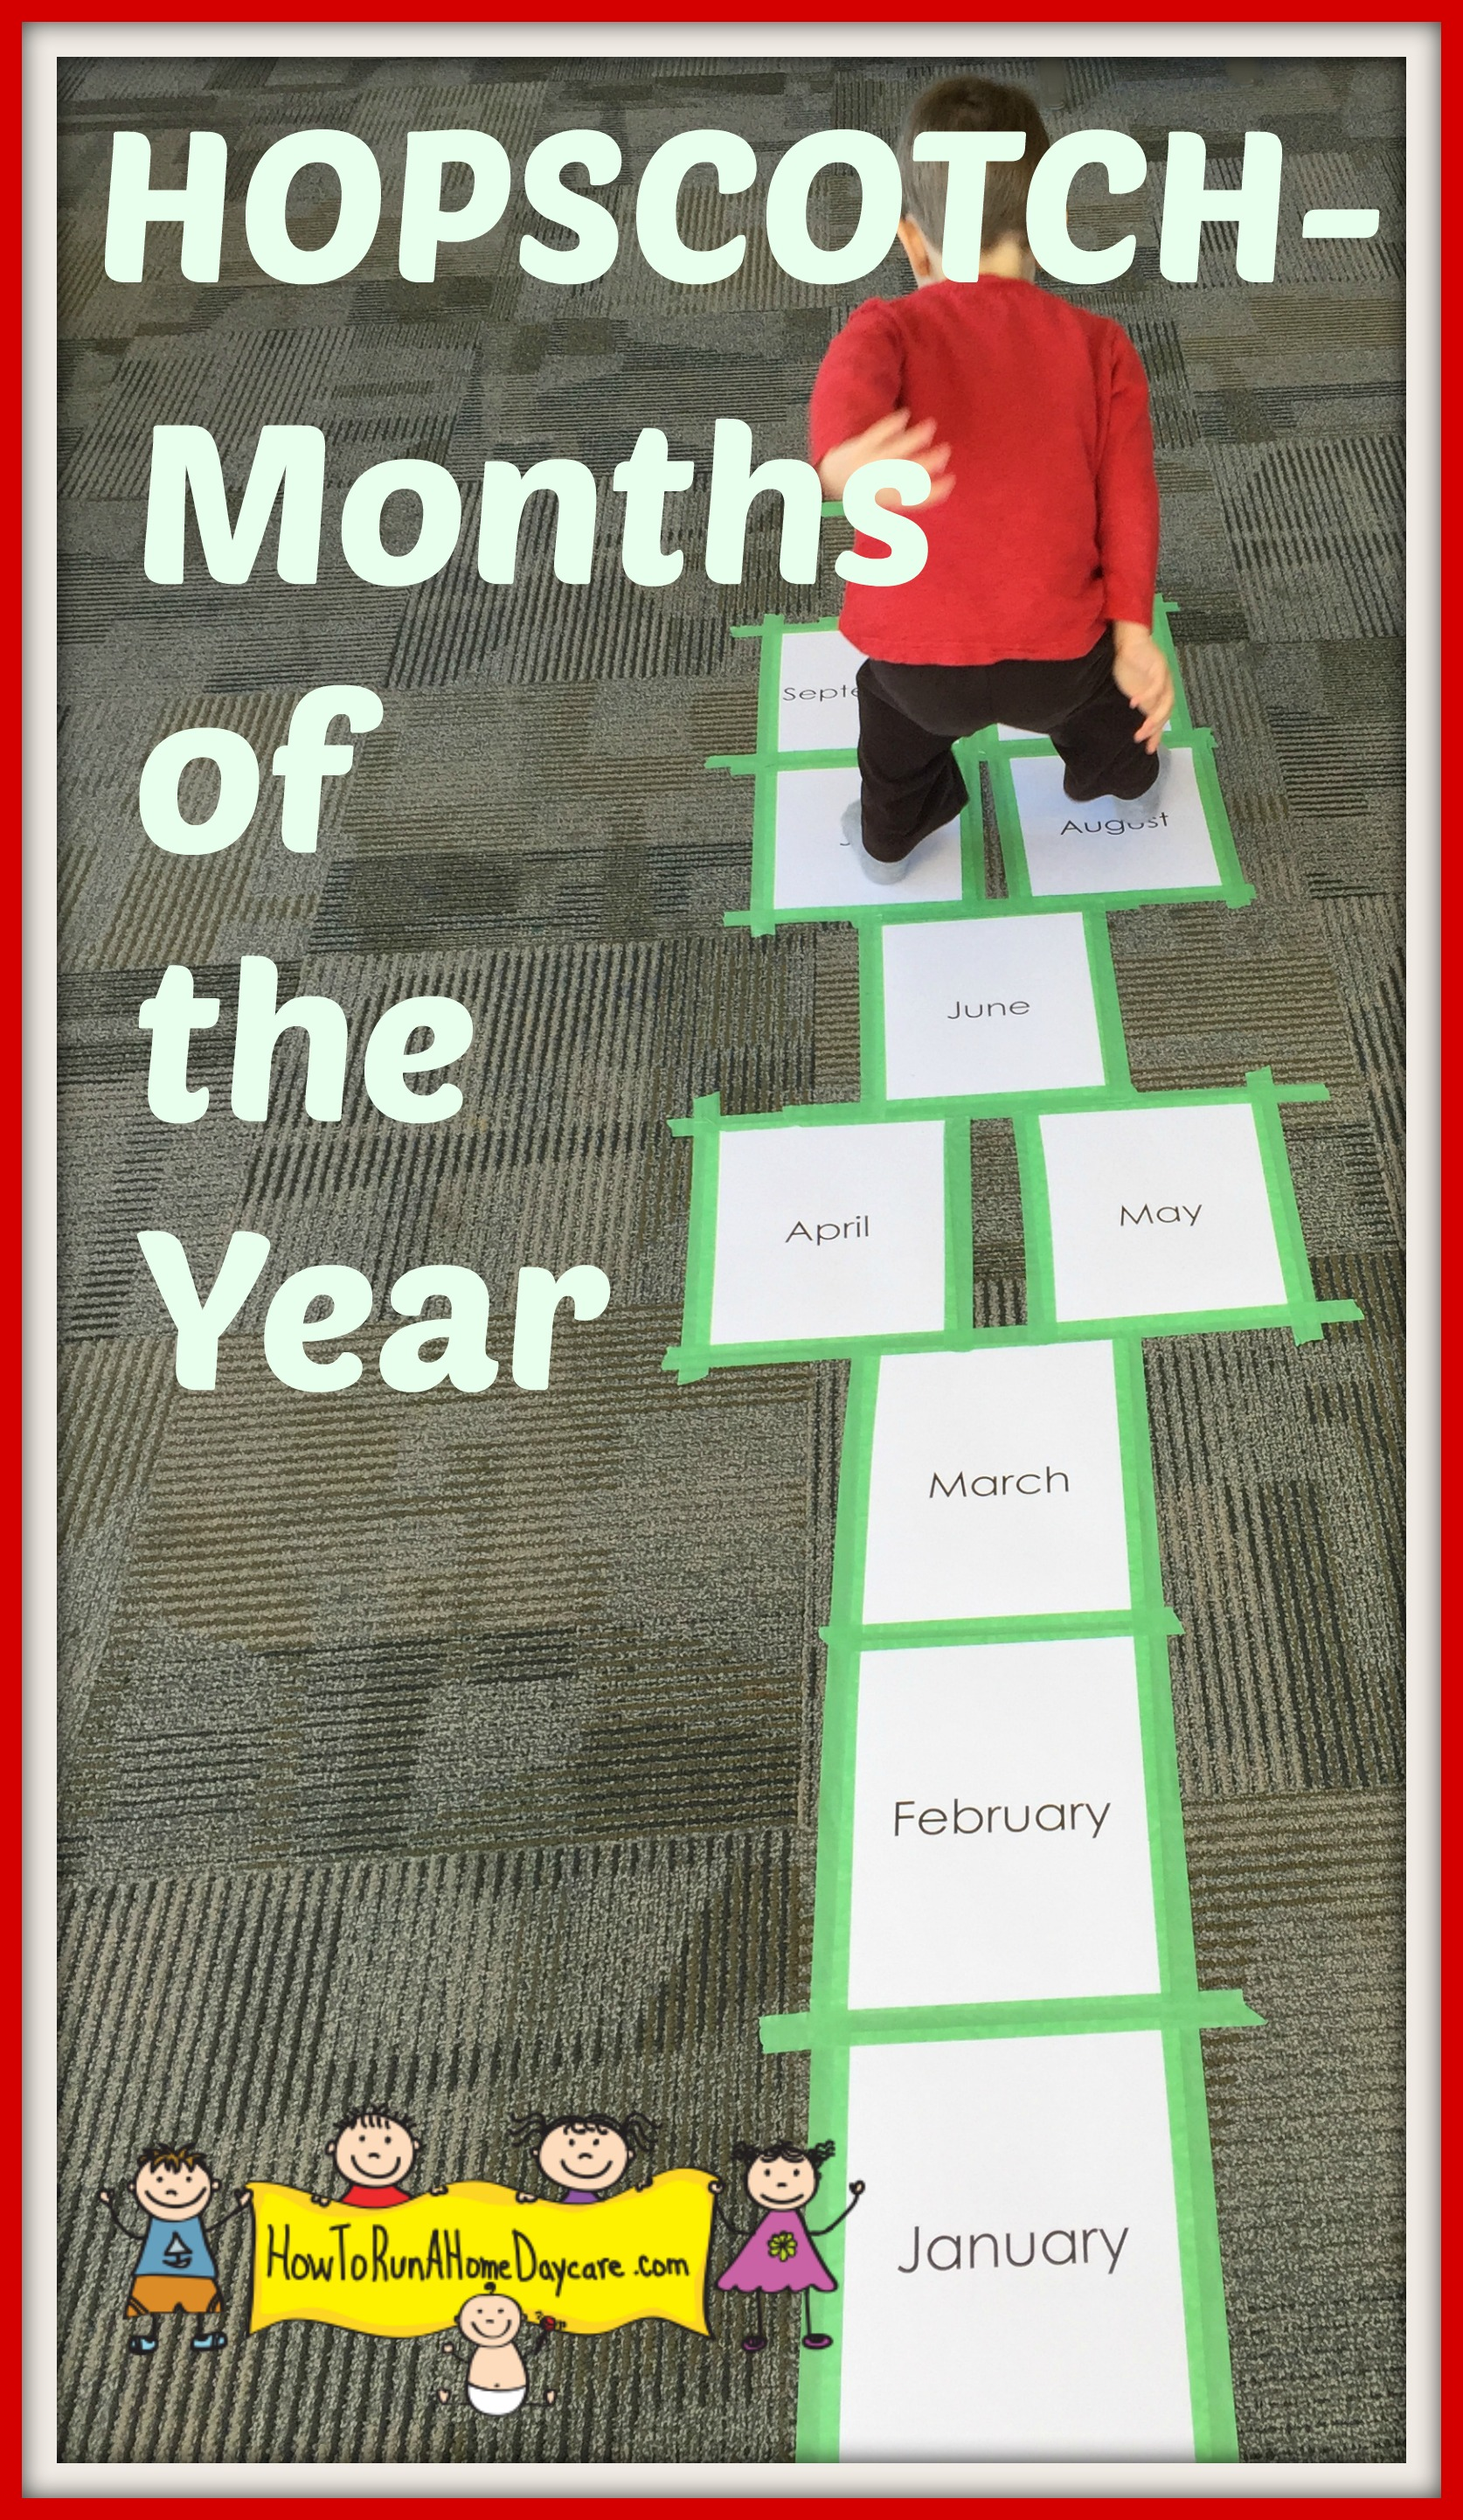 Hopscotch- Months of the Year - How To Run A Home Daycare